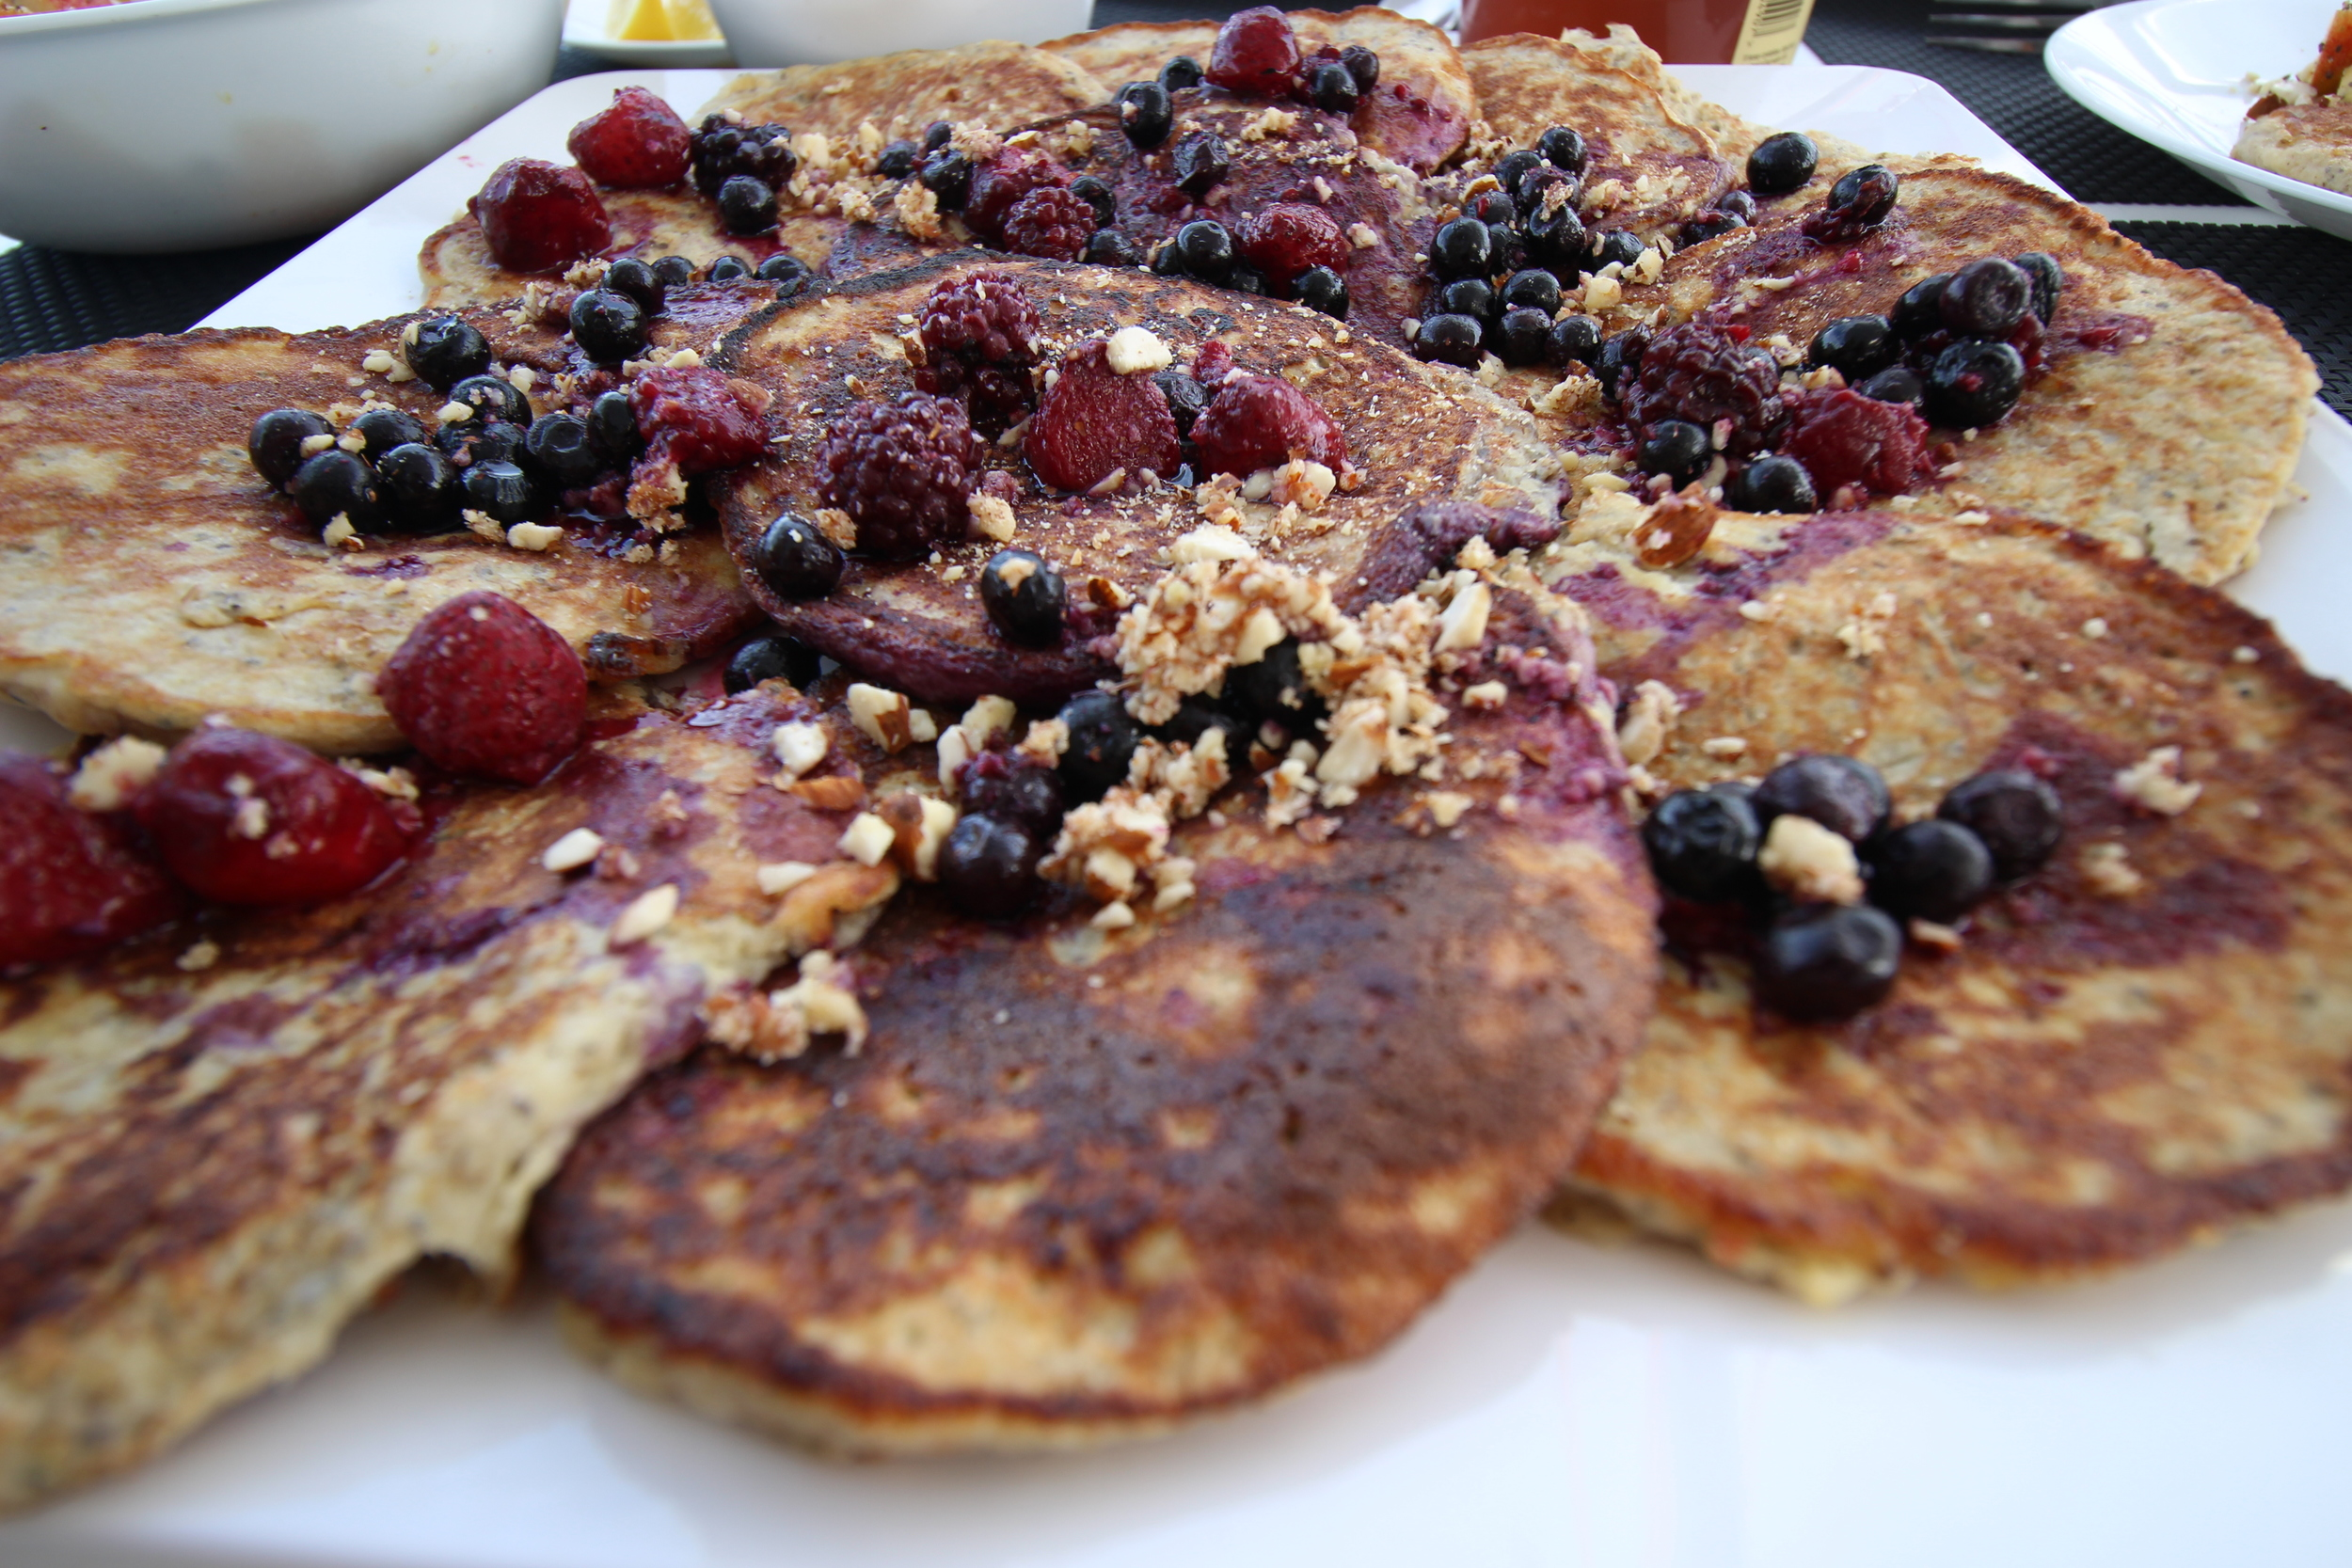 Banana and coconut pancakes we enjoyed with banana ice cream berries, fresh orange juice and fruit salad in an attempt to eat as much of our left over fruit as we could so it didn't go to waste.